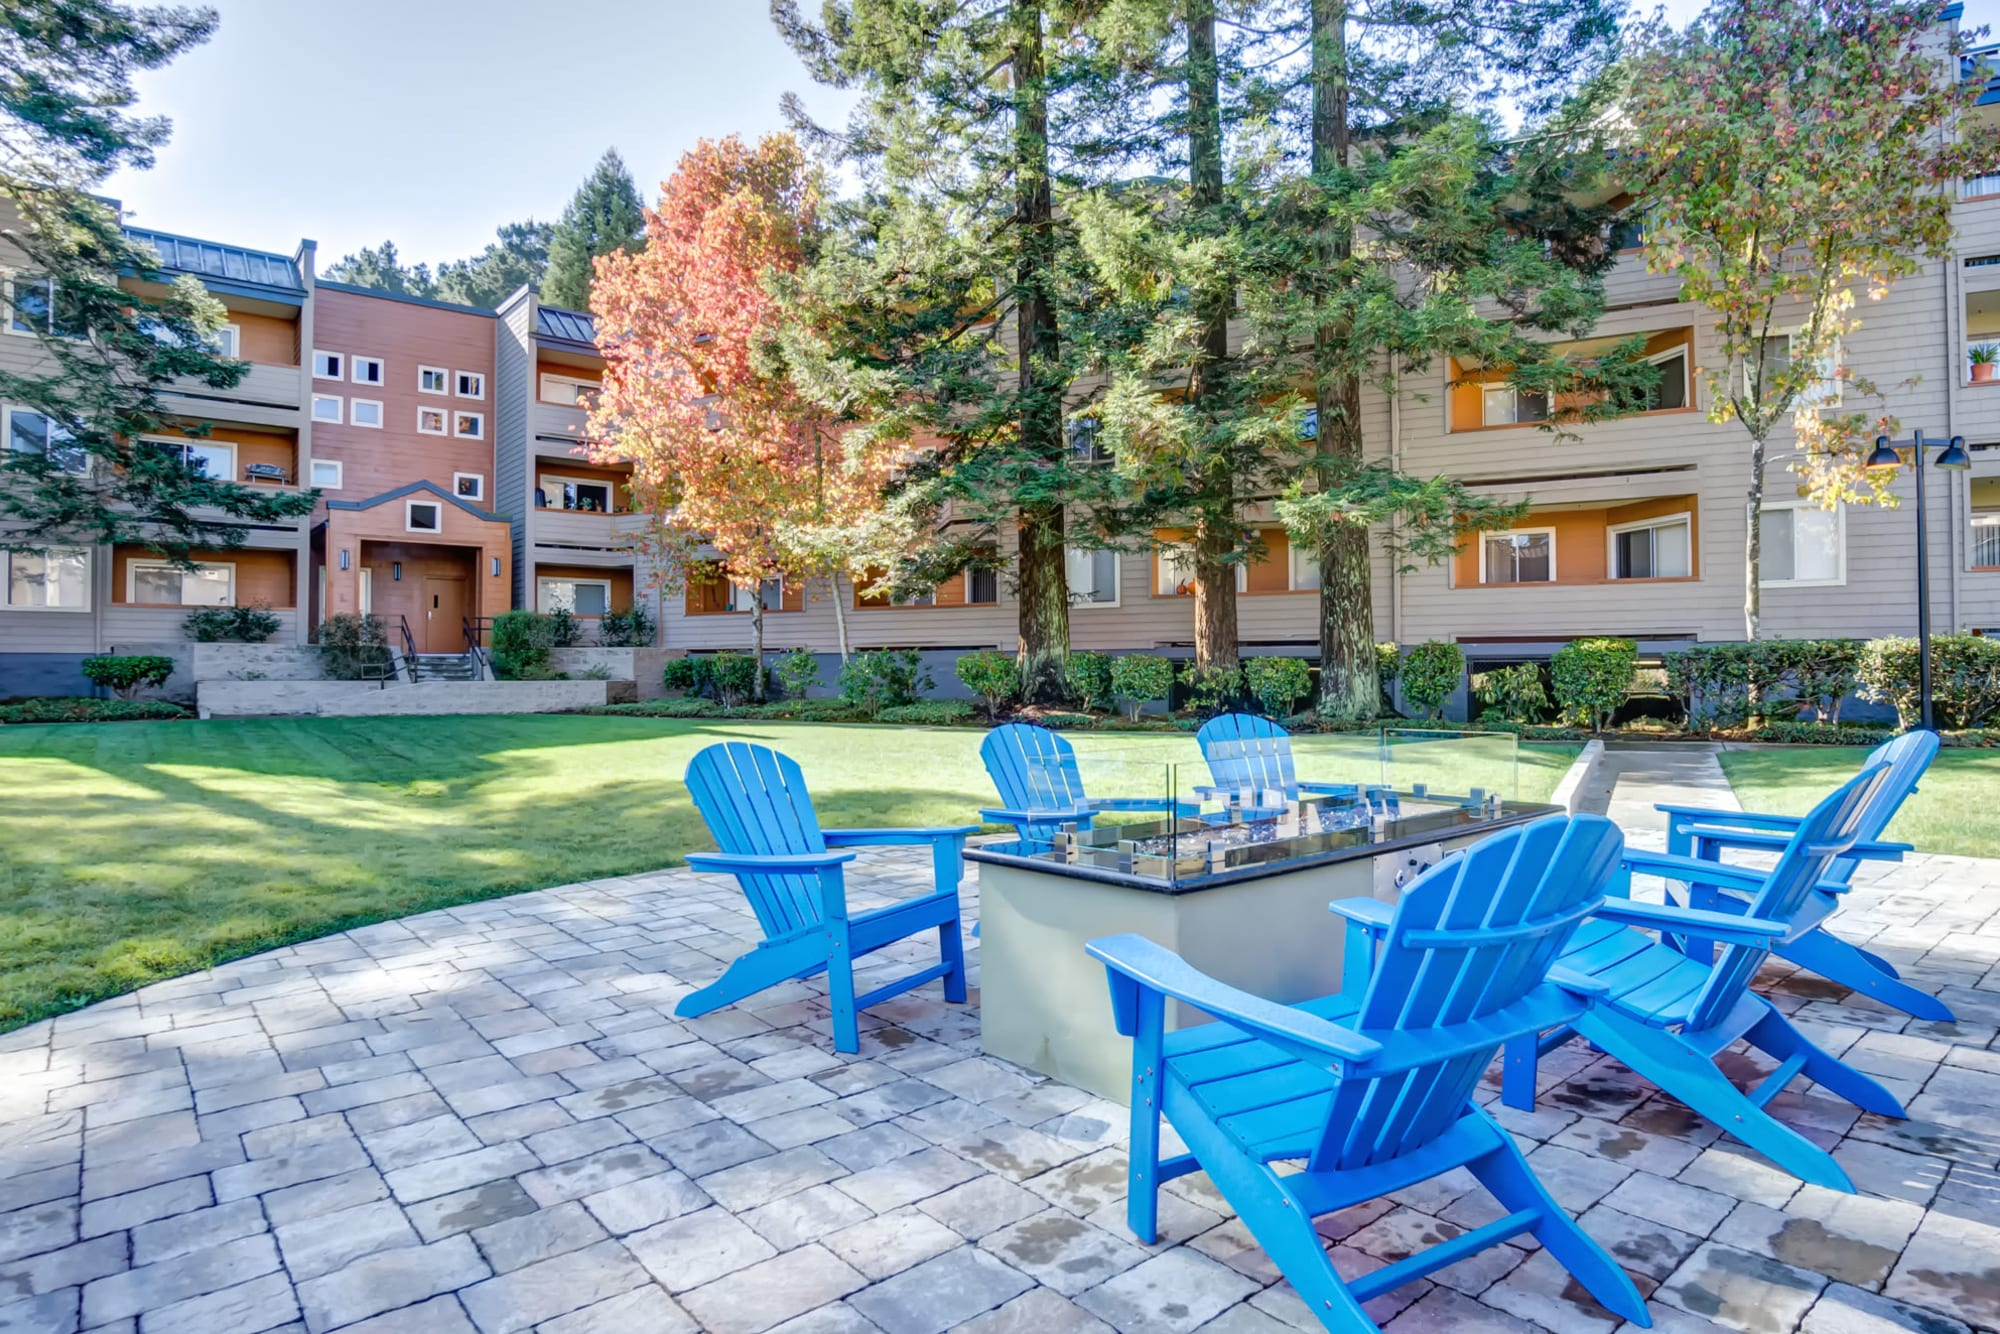 Fire Pit with Adirondack chairs at Serramonte Ridge Apartment Homes